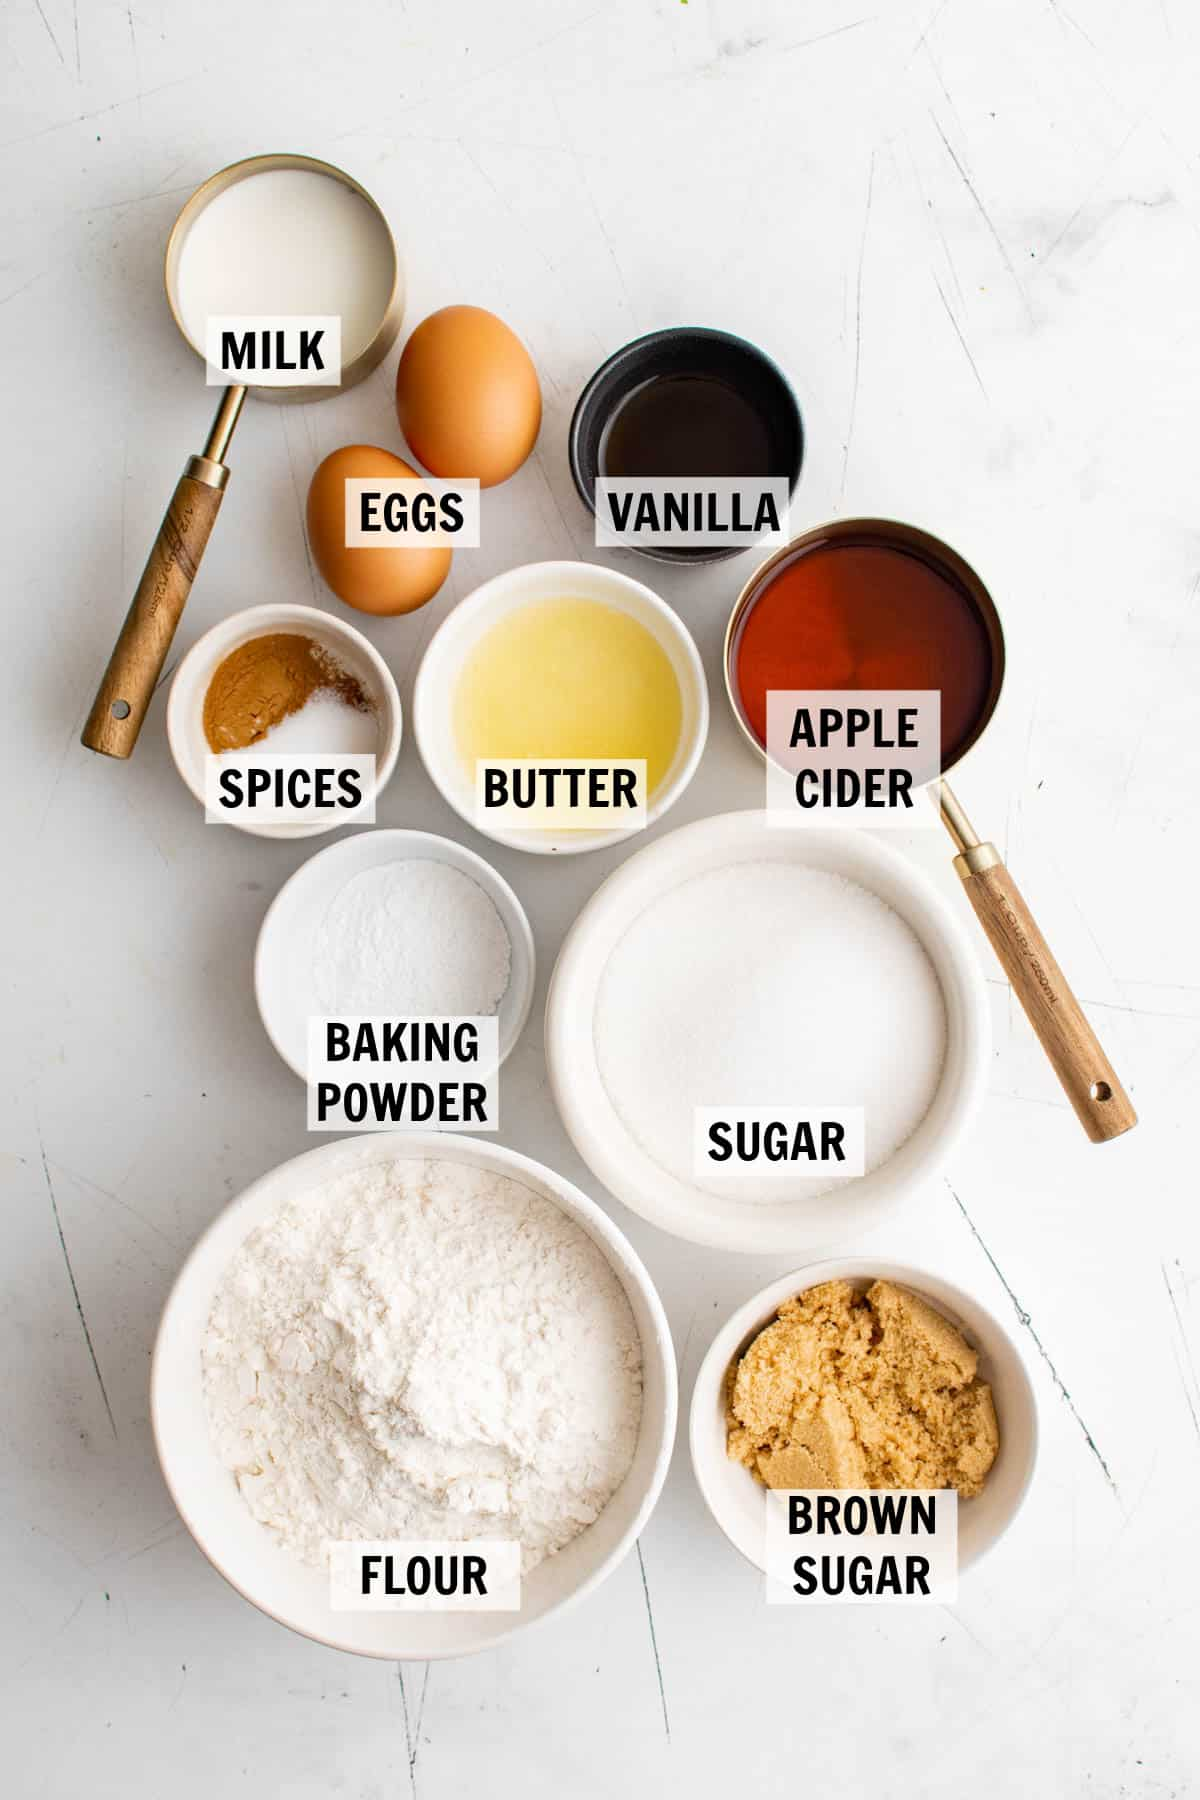 all of the ingredients for baked apple cider donuts in bowls on a white tabletop